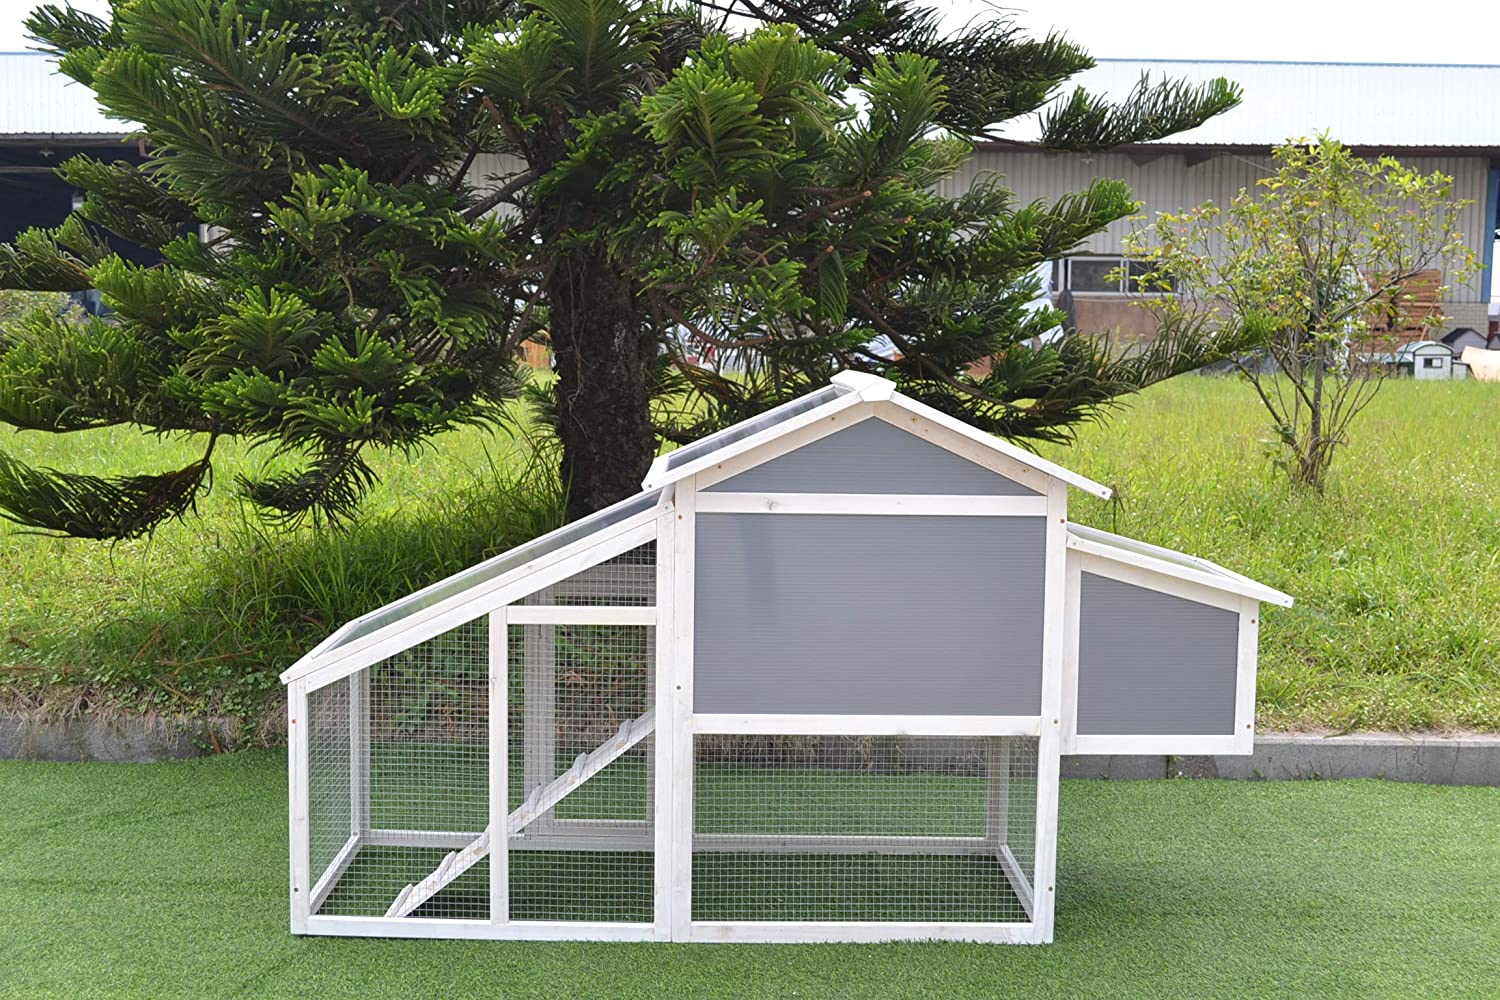 Coop King Poly-Carbonate Chicken Coop with Metal Tray